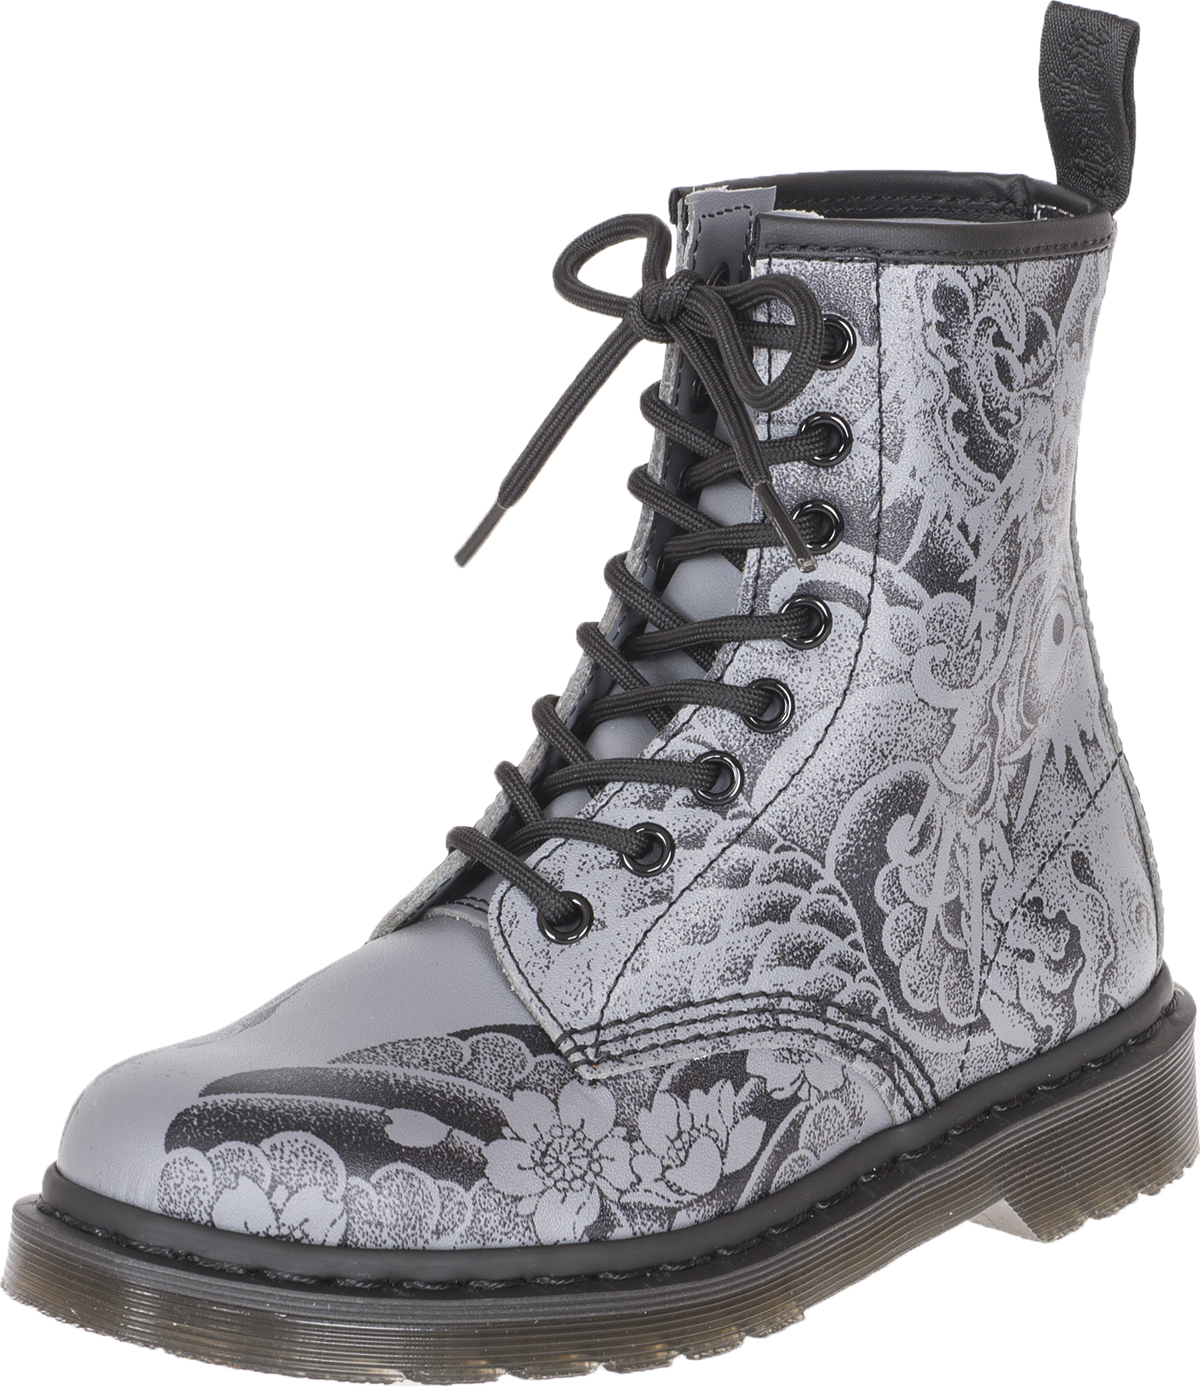 40 Unique Ways to Style Dr Martens Boots - Iconic And Stylish